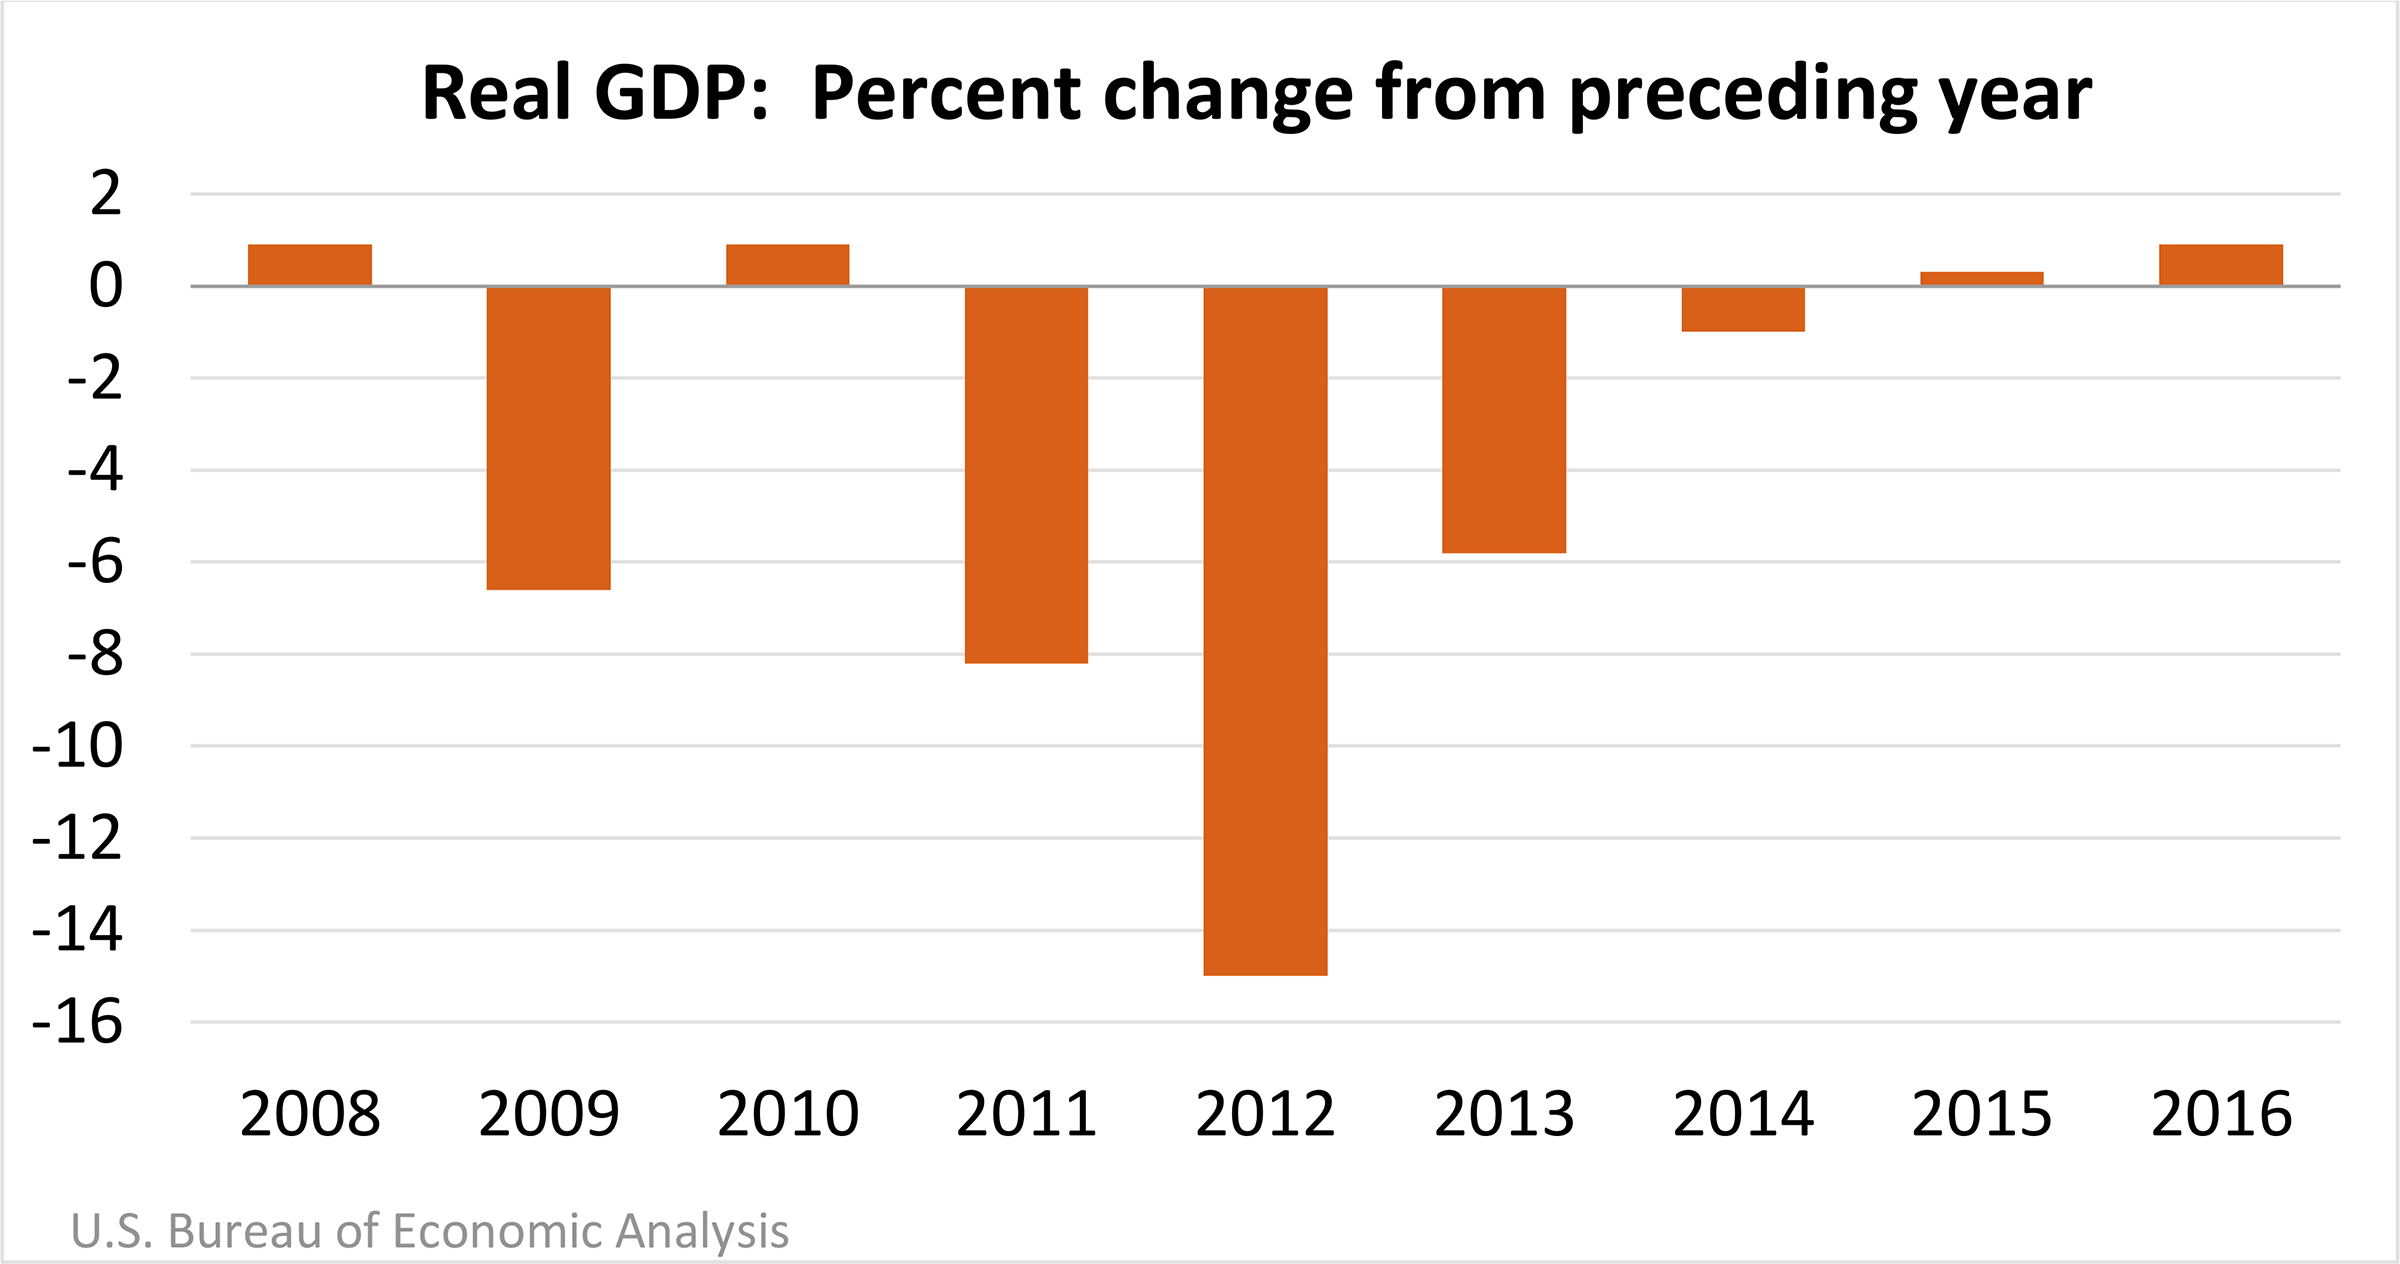 Real GDP: Percent change from the previous year